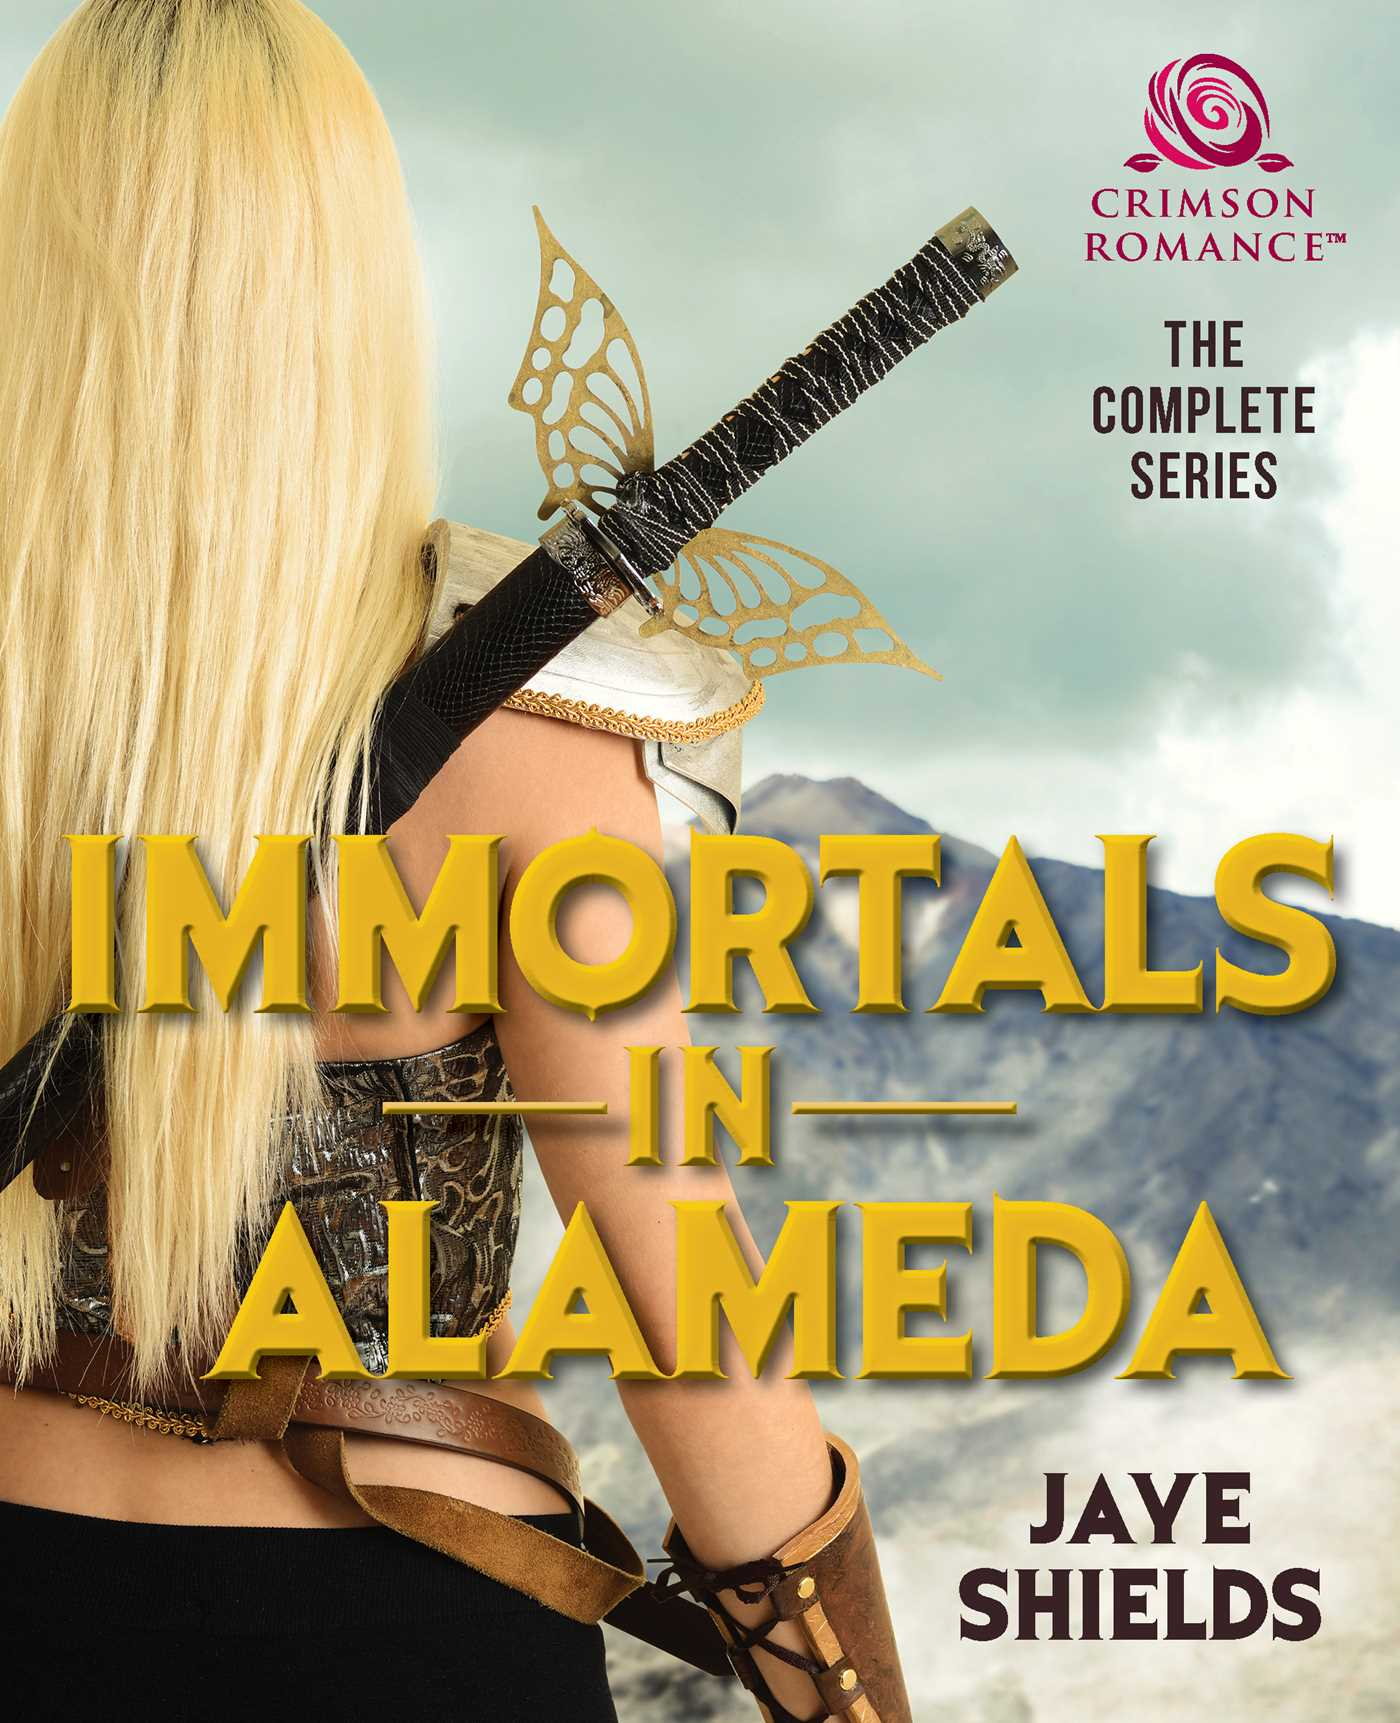 Immortals in alameda 9781507205648 hr